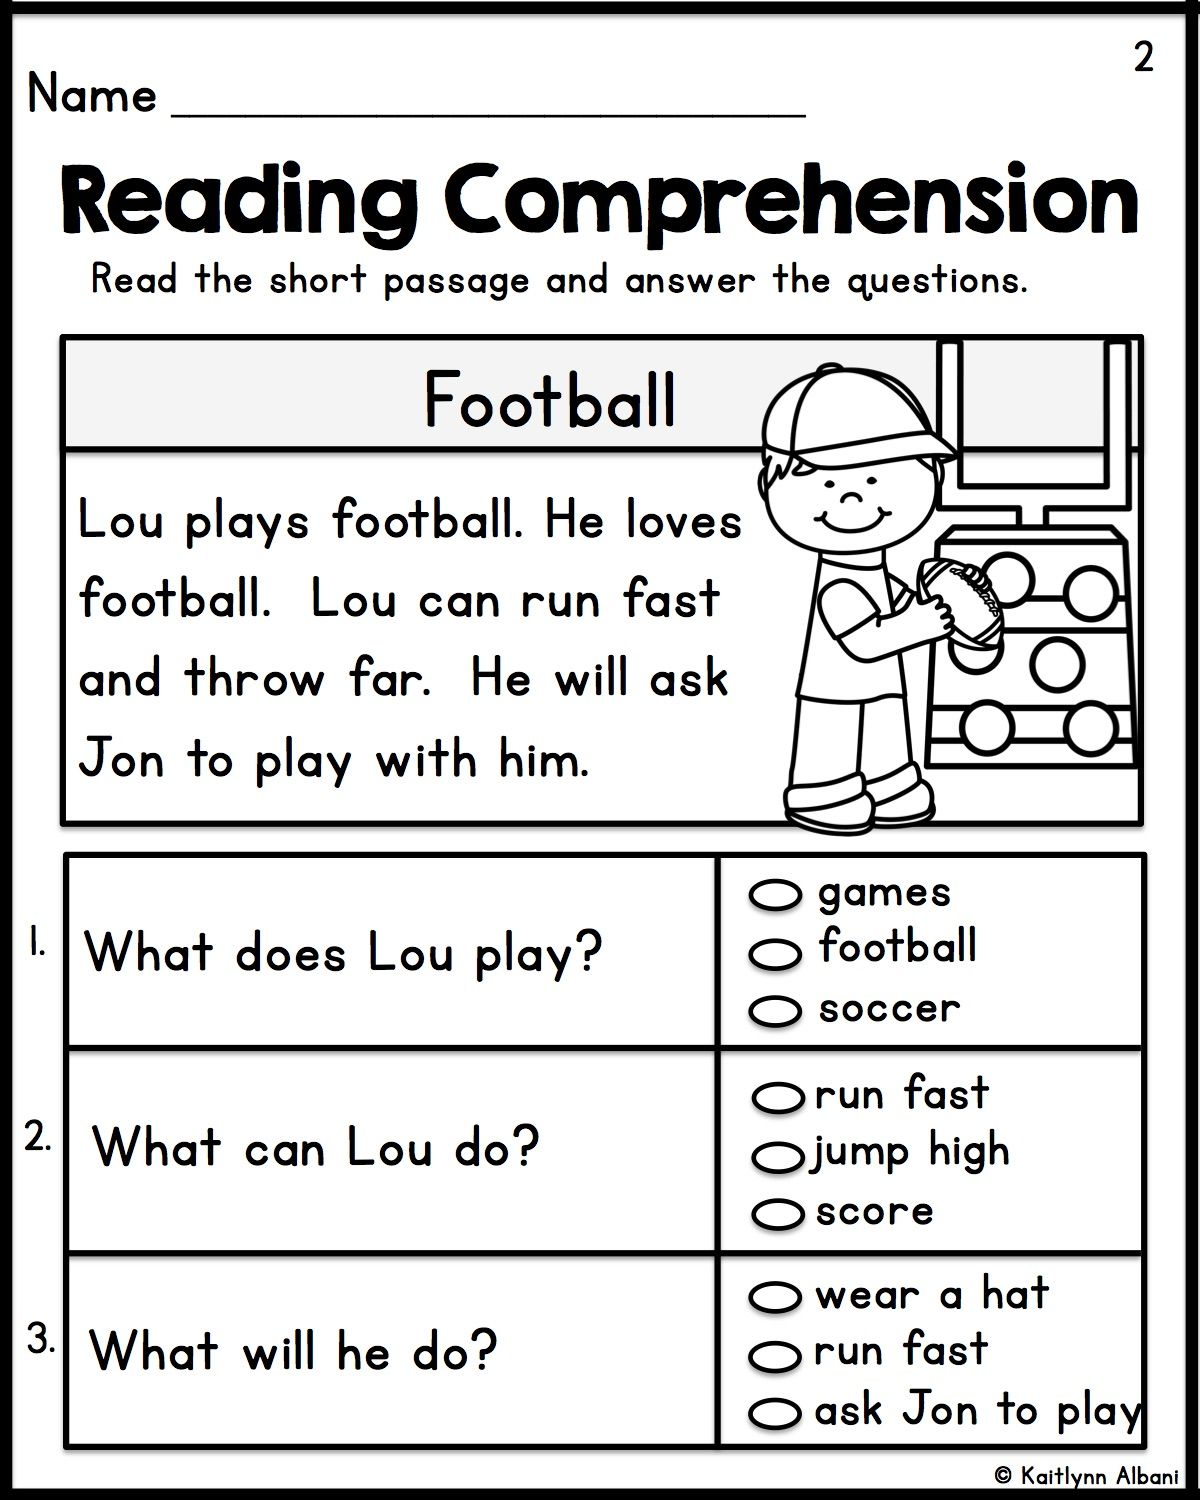 Kindergarten Reading Comprehension Passages Set 1 Reading